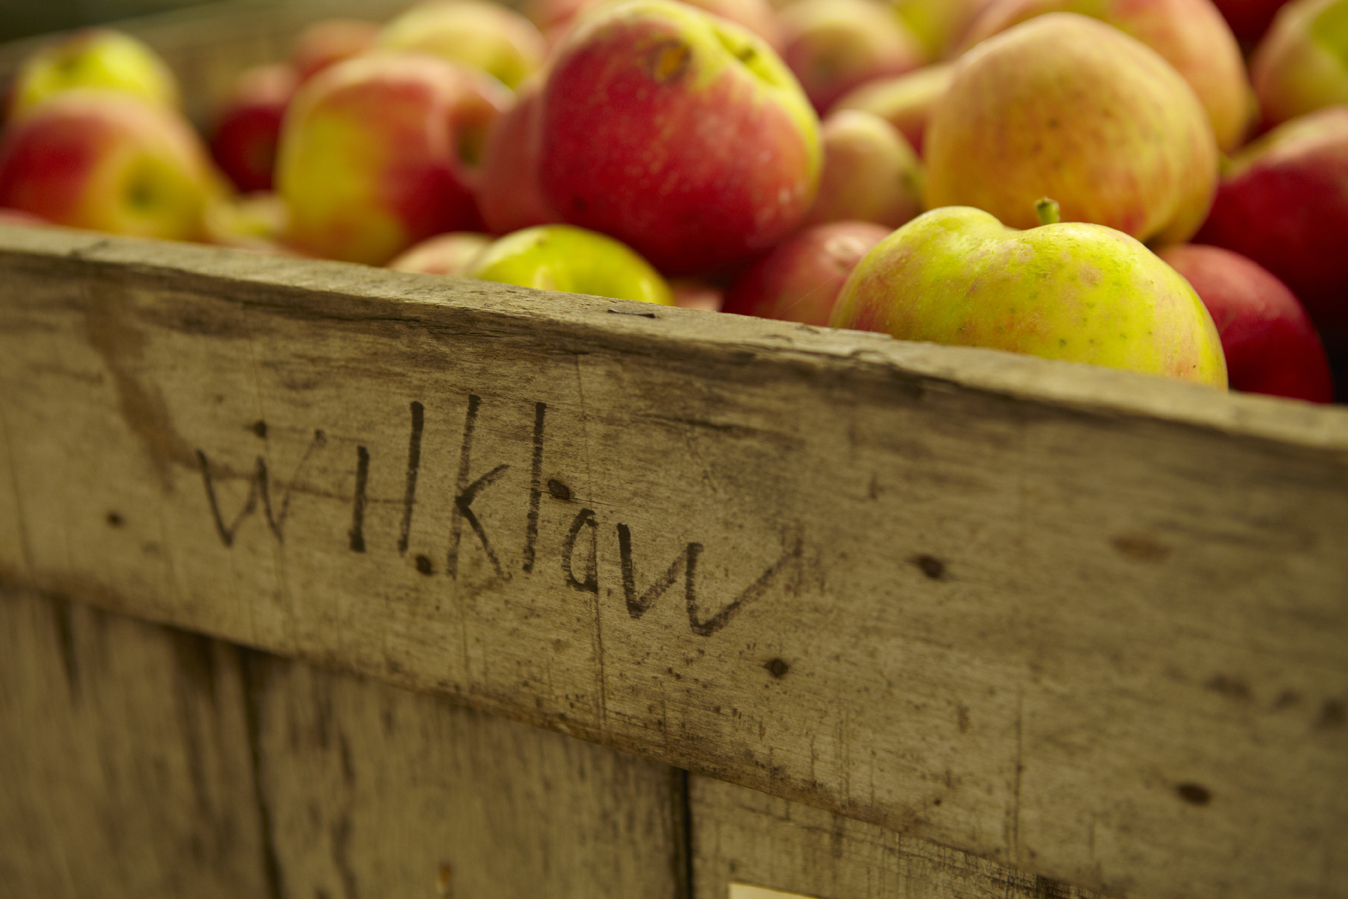 Wilklow Family Farm (where we get our apples)